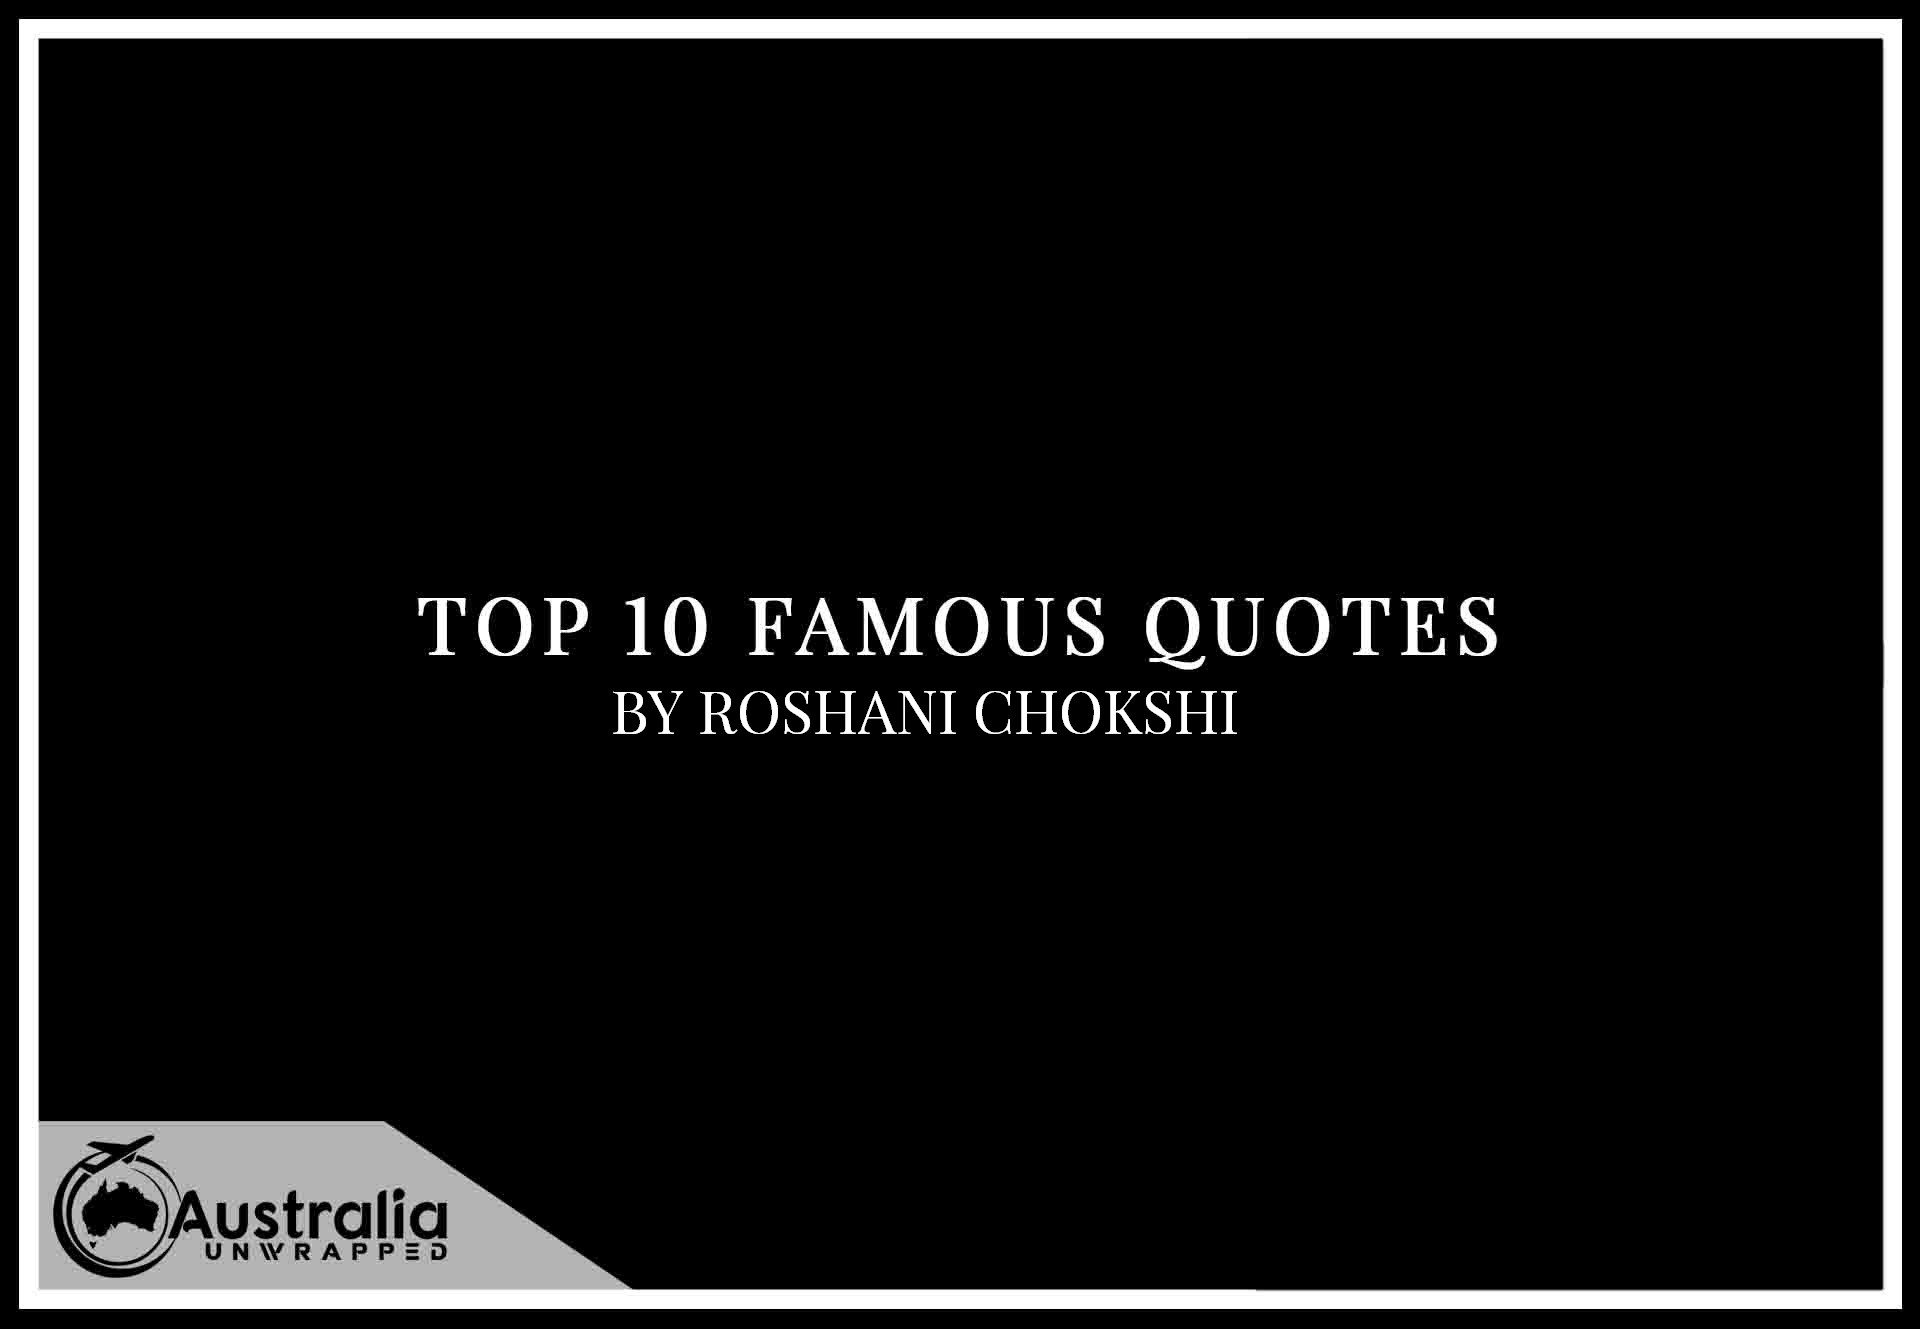 Top 10 Famous Quotes by Author Roshani Chokshi